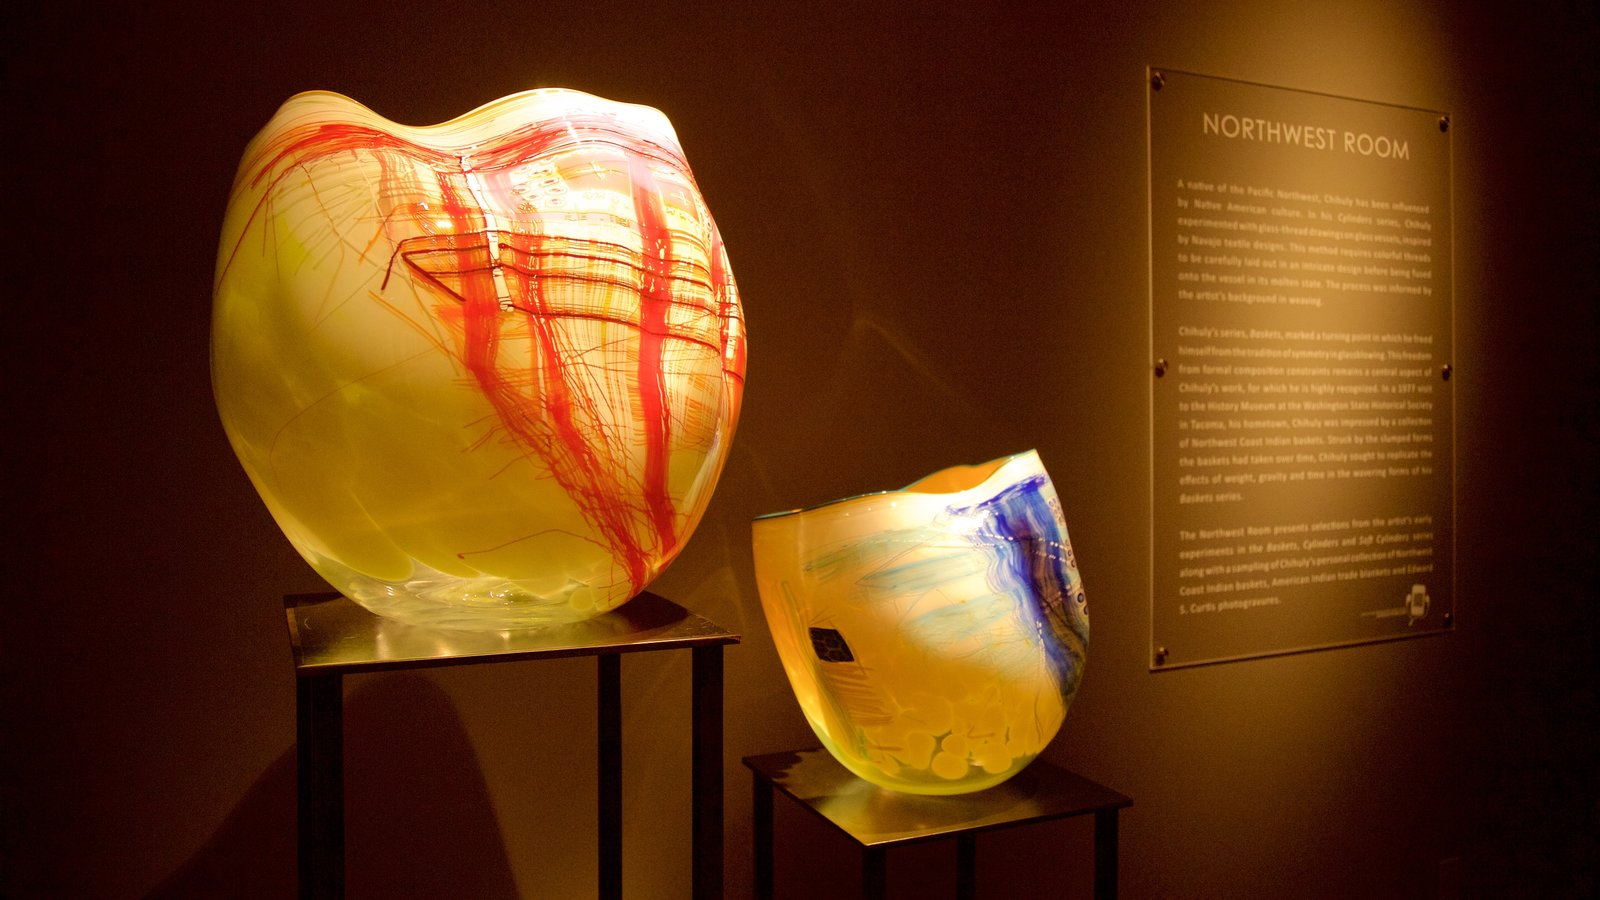 Chihuly Garden and Glass Pictures: View Photos & Images of Chihuly ...